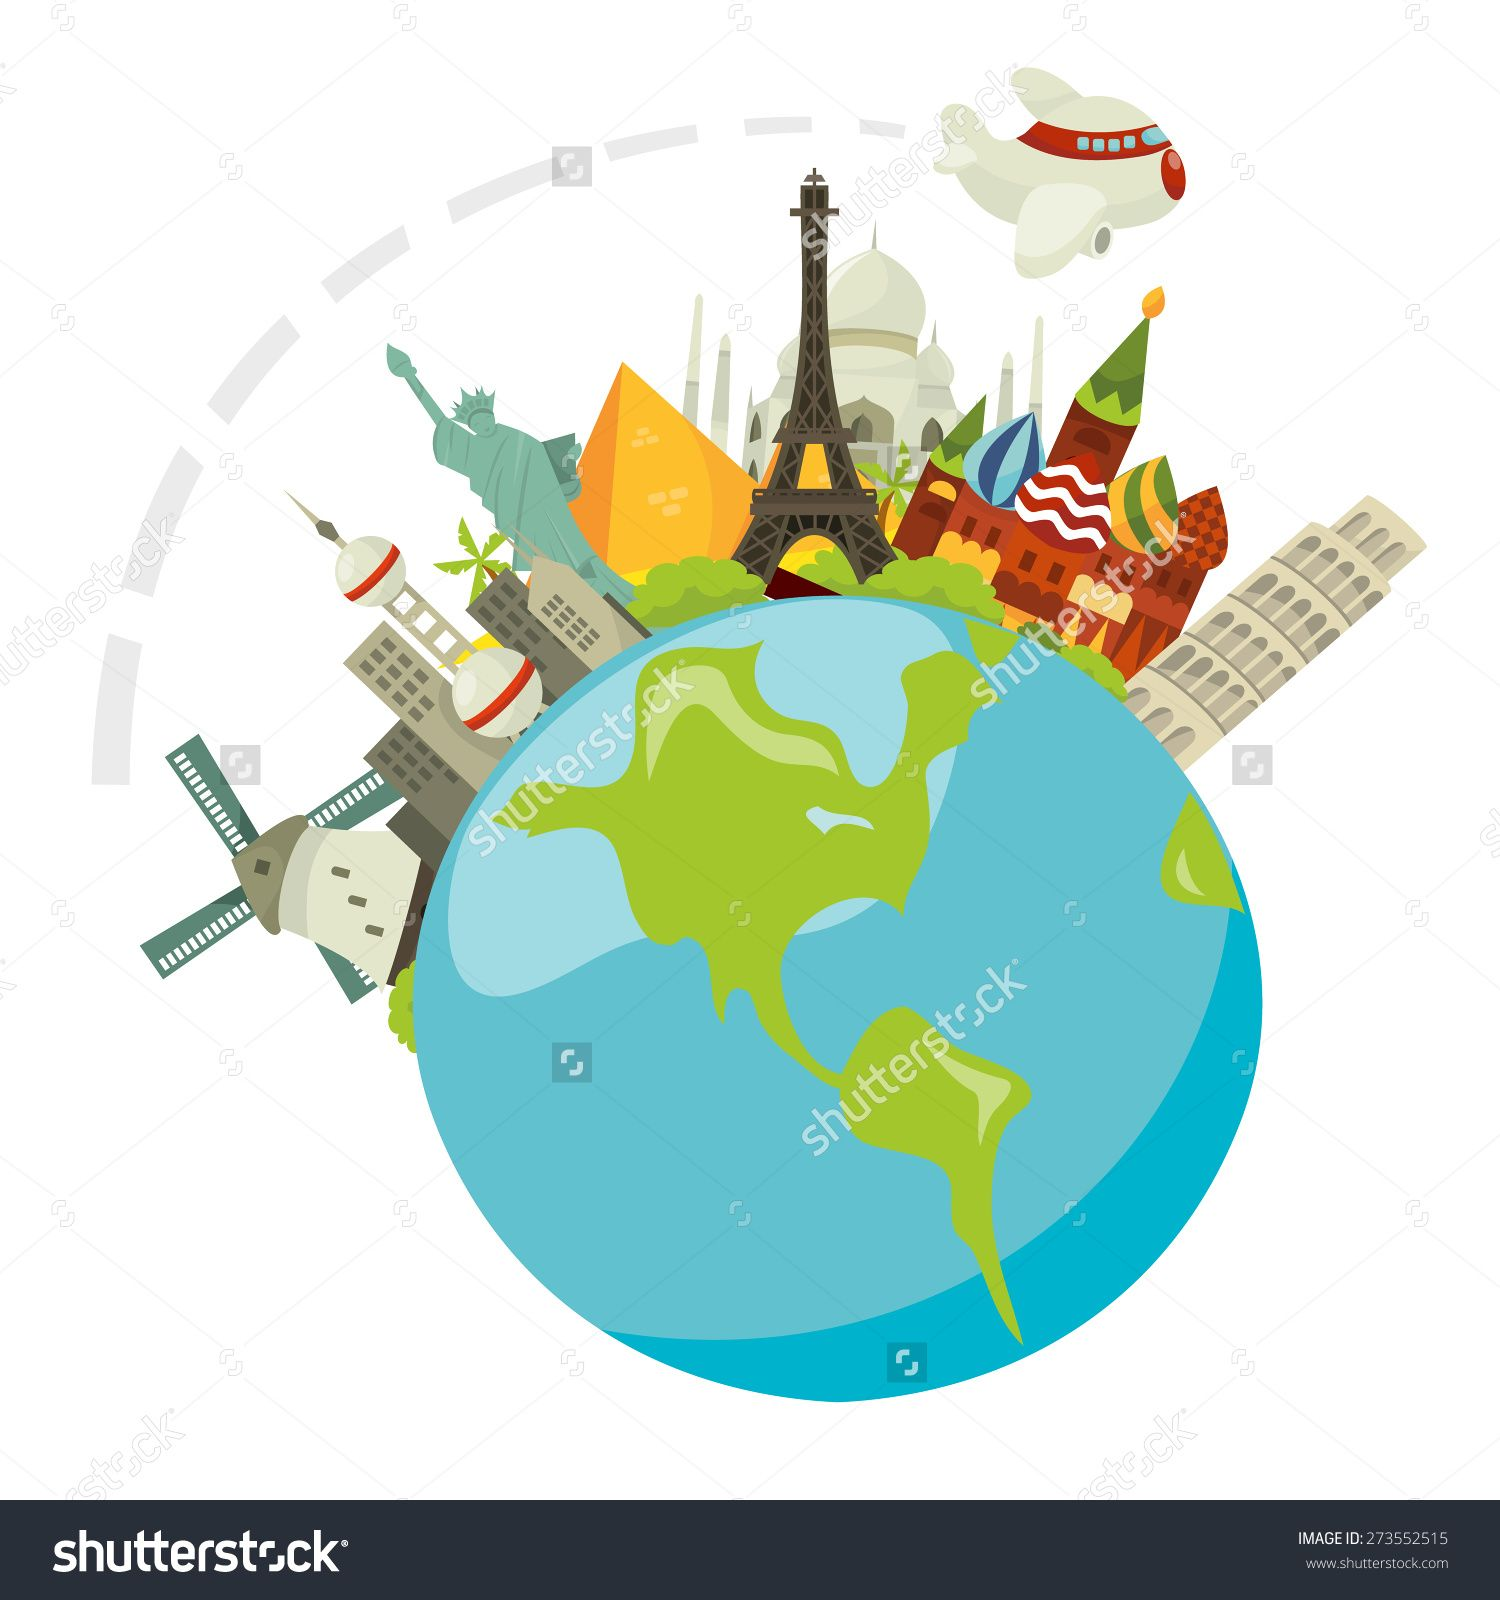 A Cartoon Vector Illustration Of Travel Concept Called Globetrotting Plane Through All